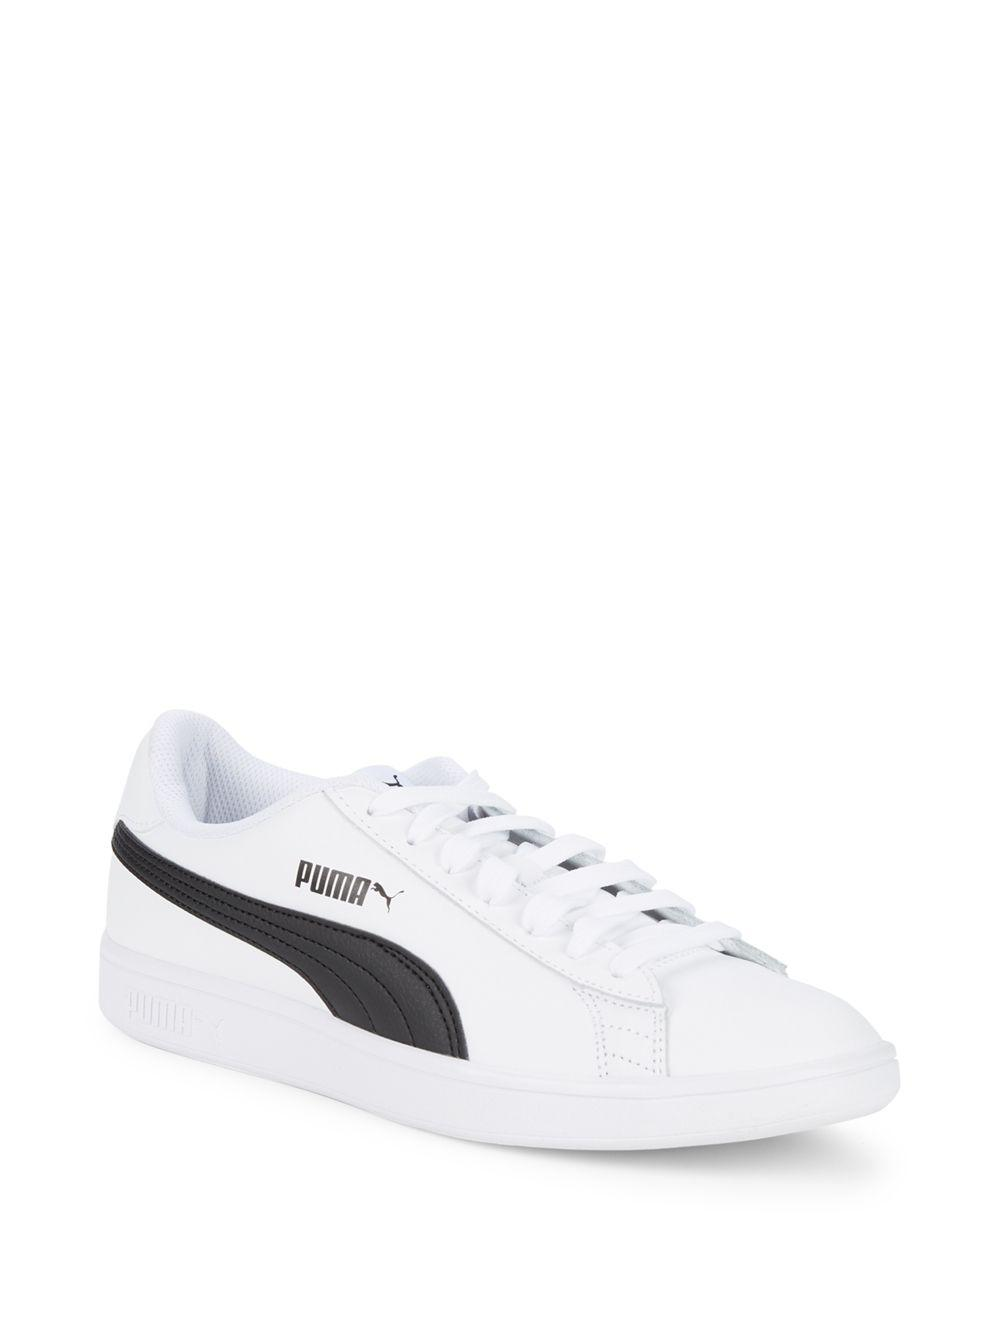 81ee7d65d150e2 PUMA Smash V2 L Low-top Runners in White - Lyst